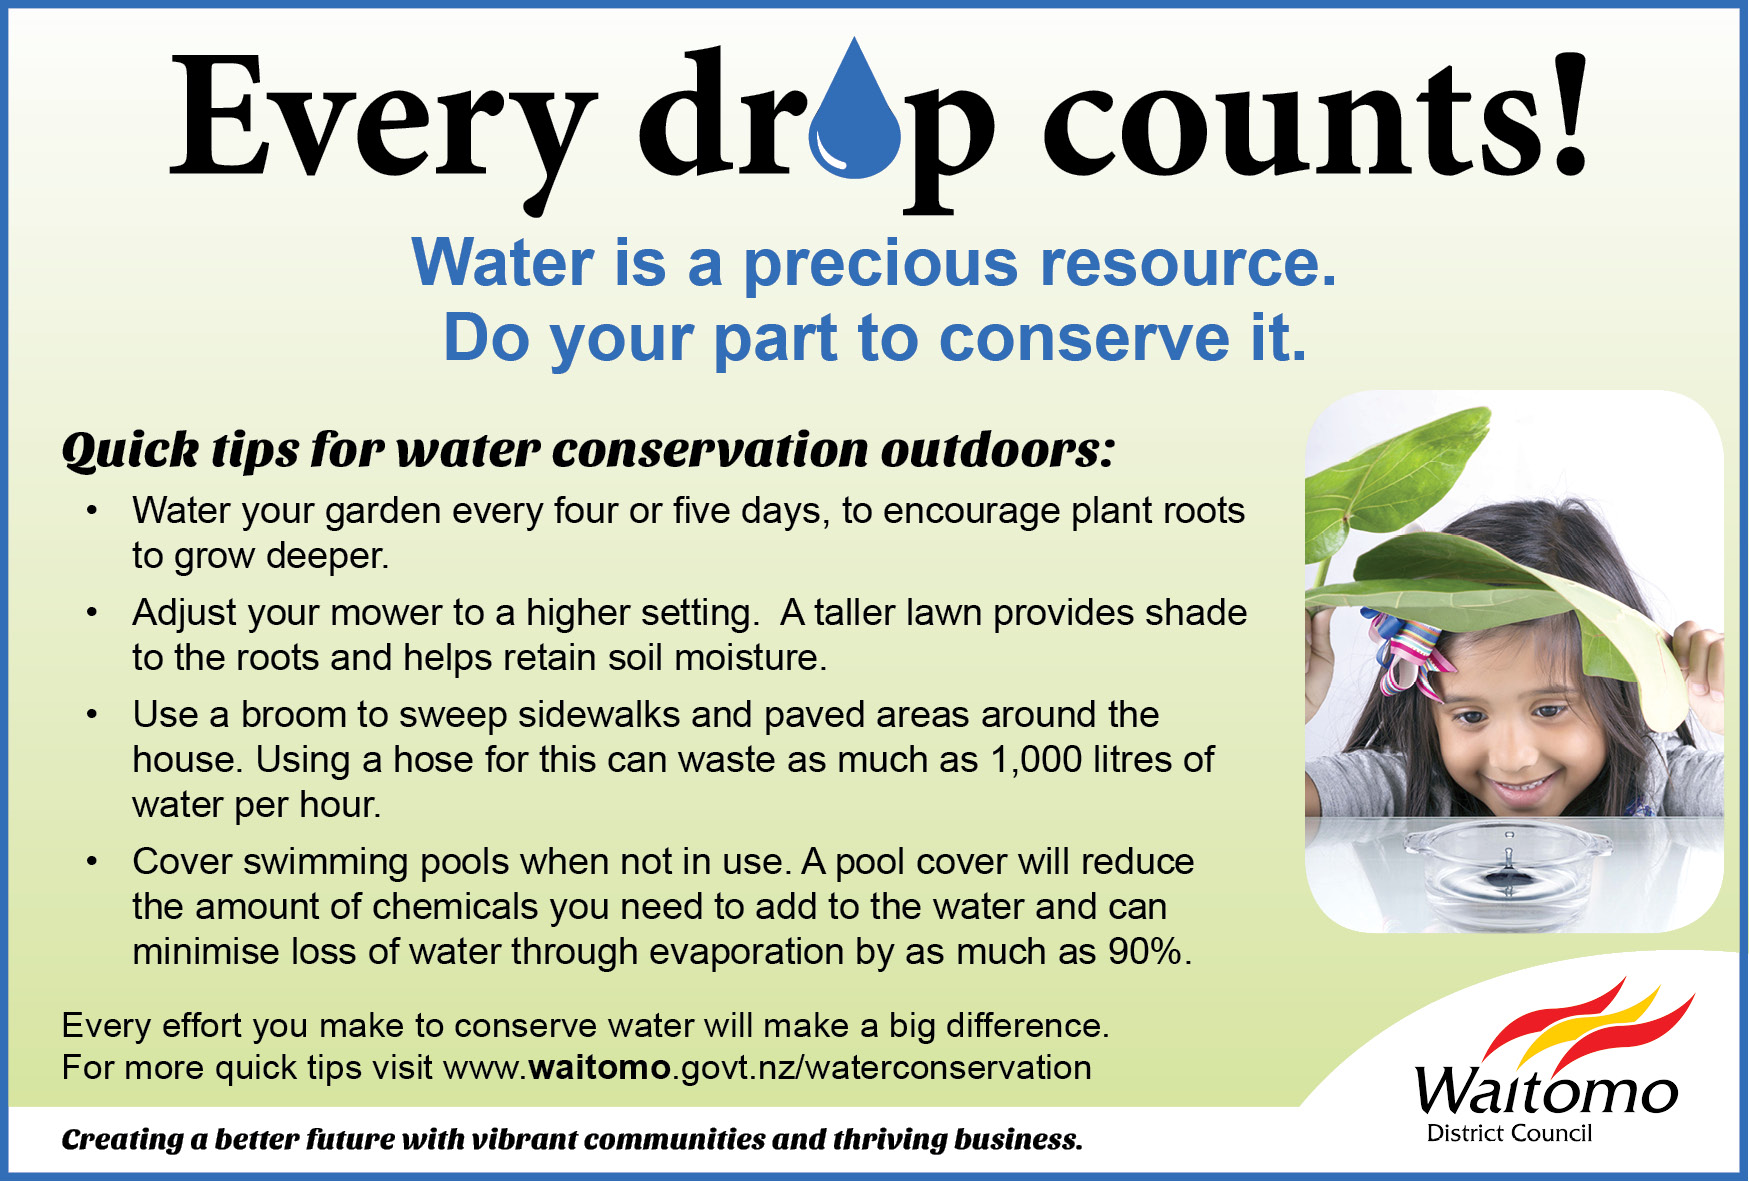 Tips for water conservation outdoors